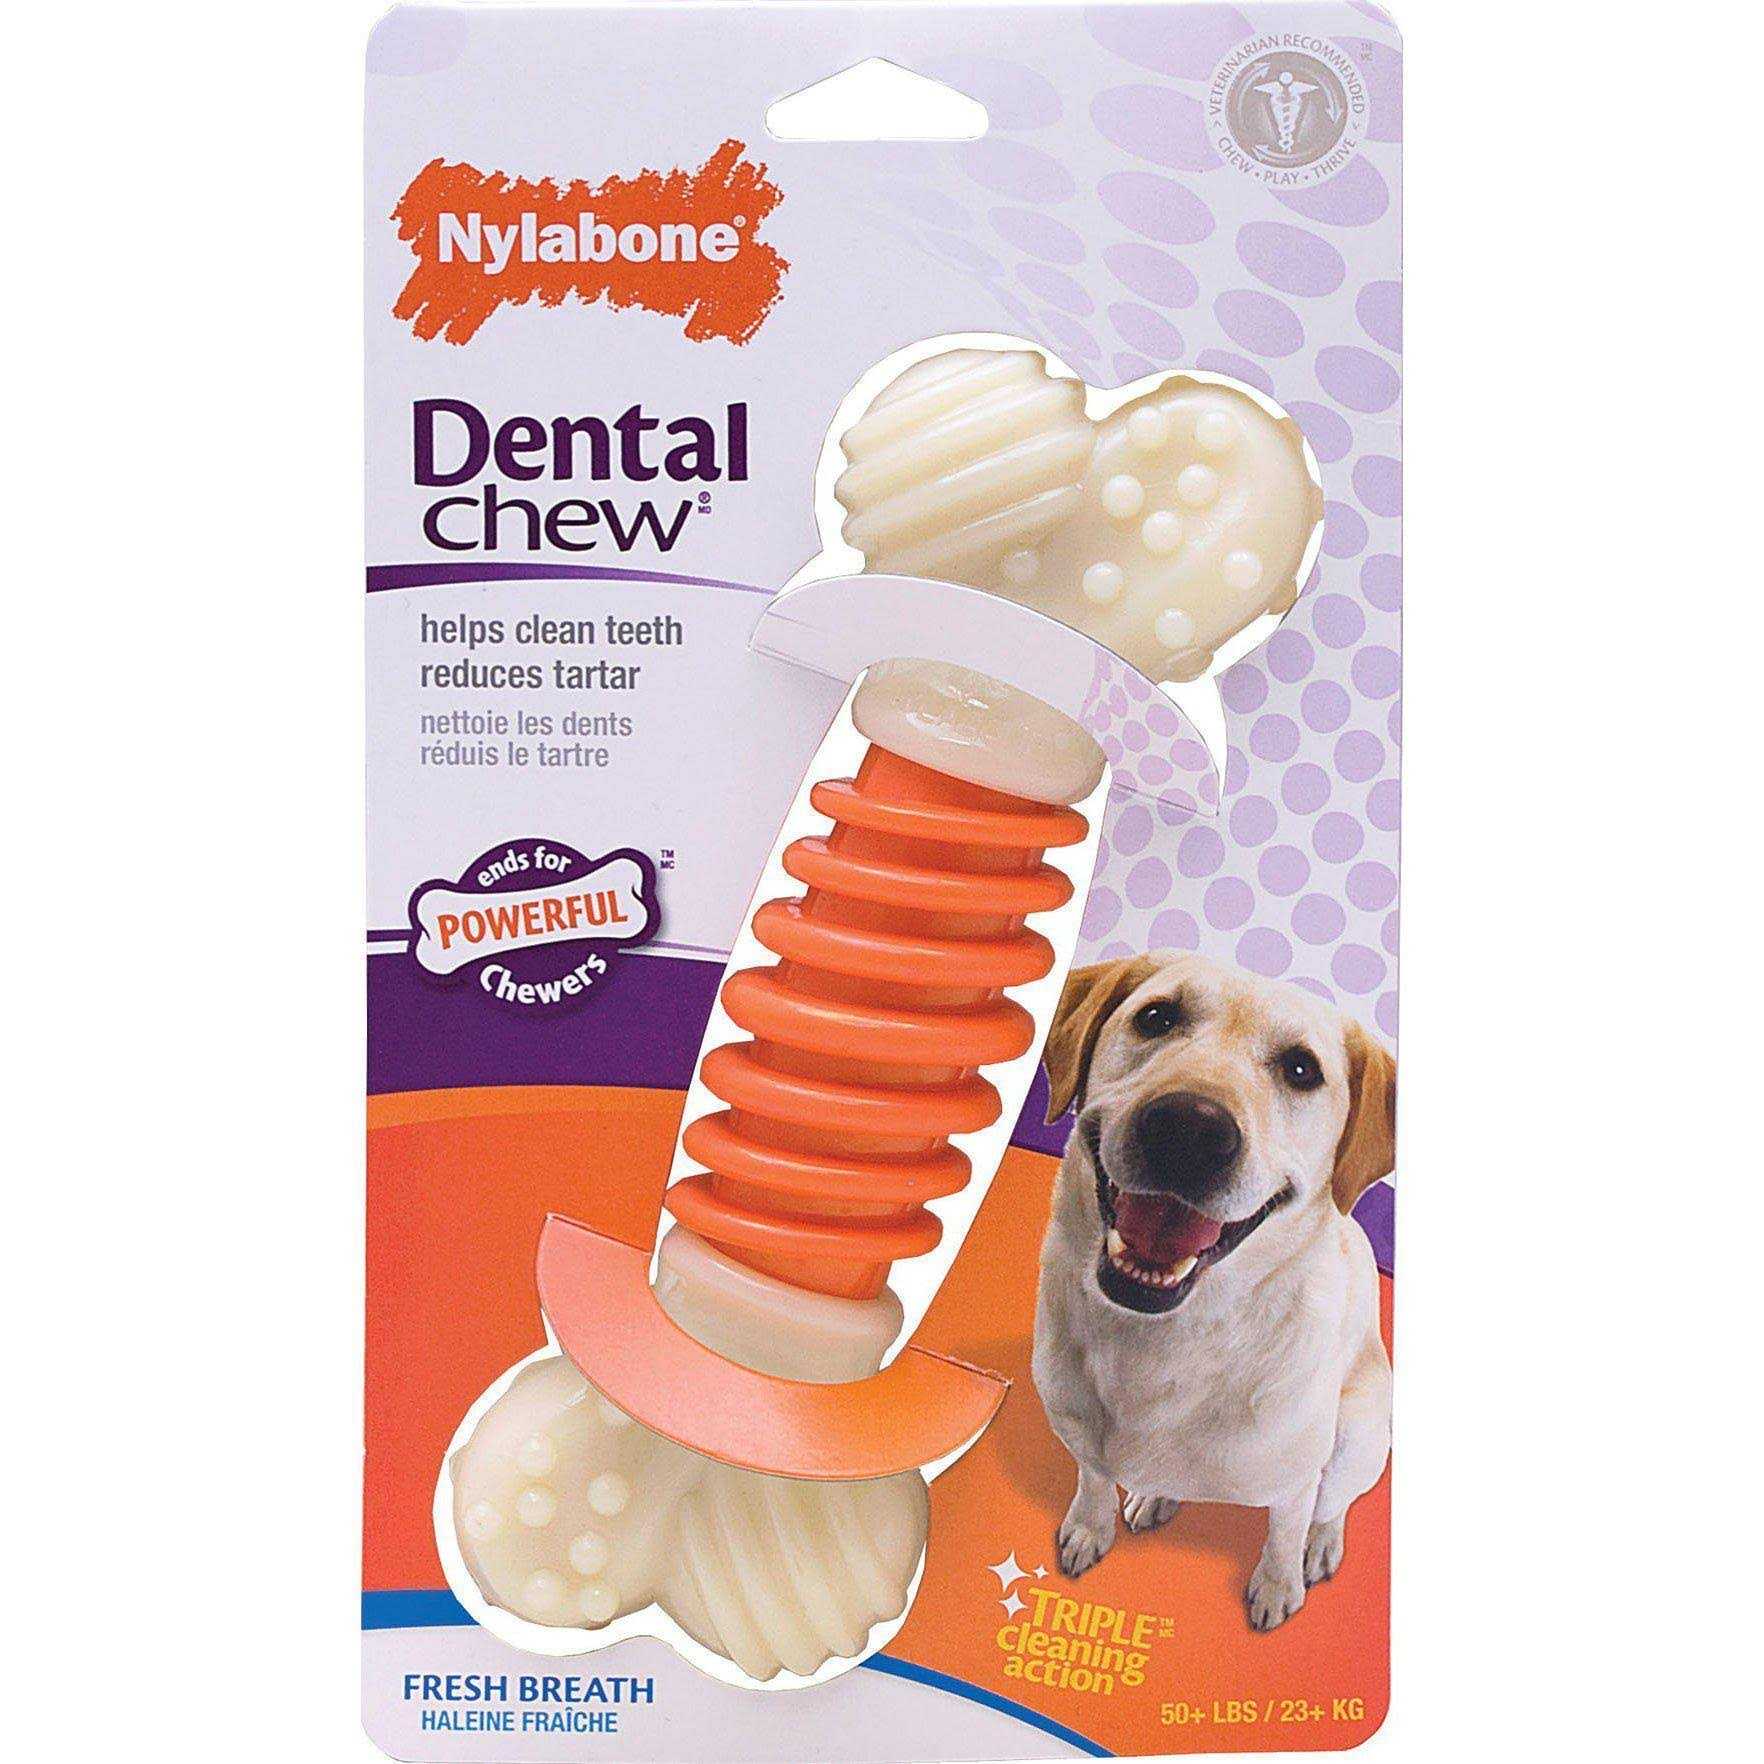 Nylabone Pro Action Dental Bone Dog Chew Toy - Large, Bacon Flavored